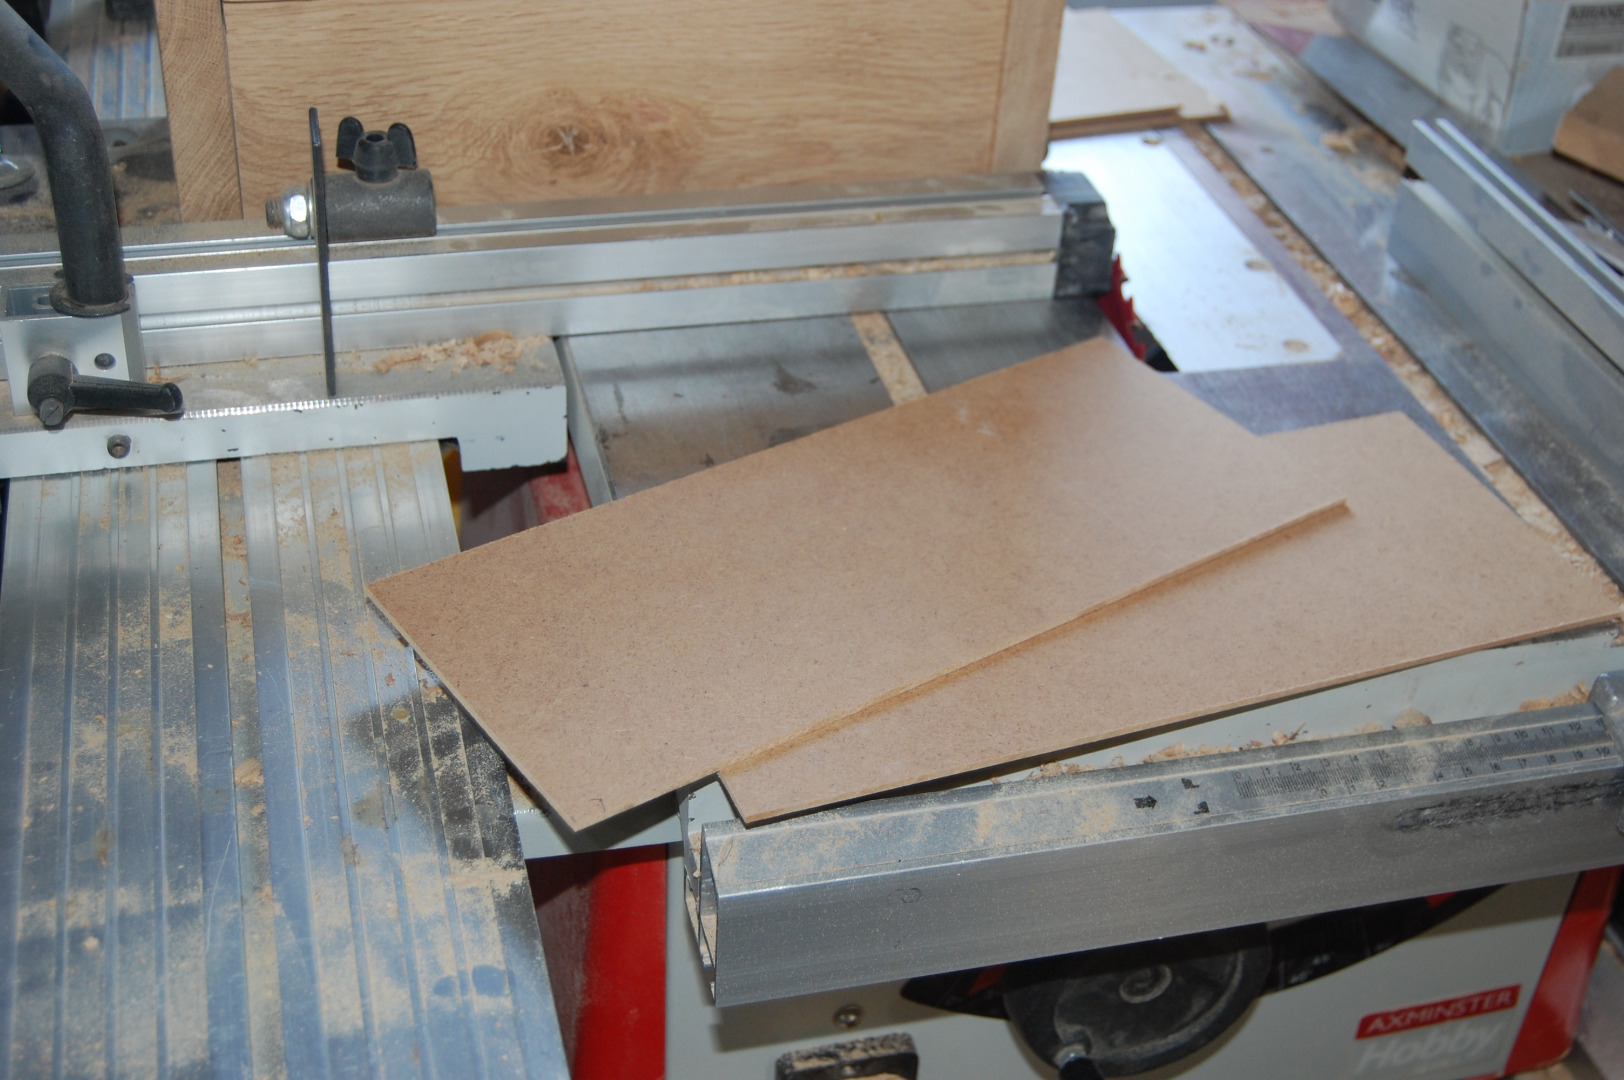 Picture of Bottom, Glue Up and Trays